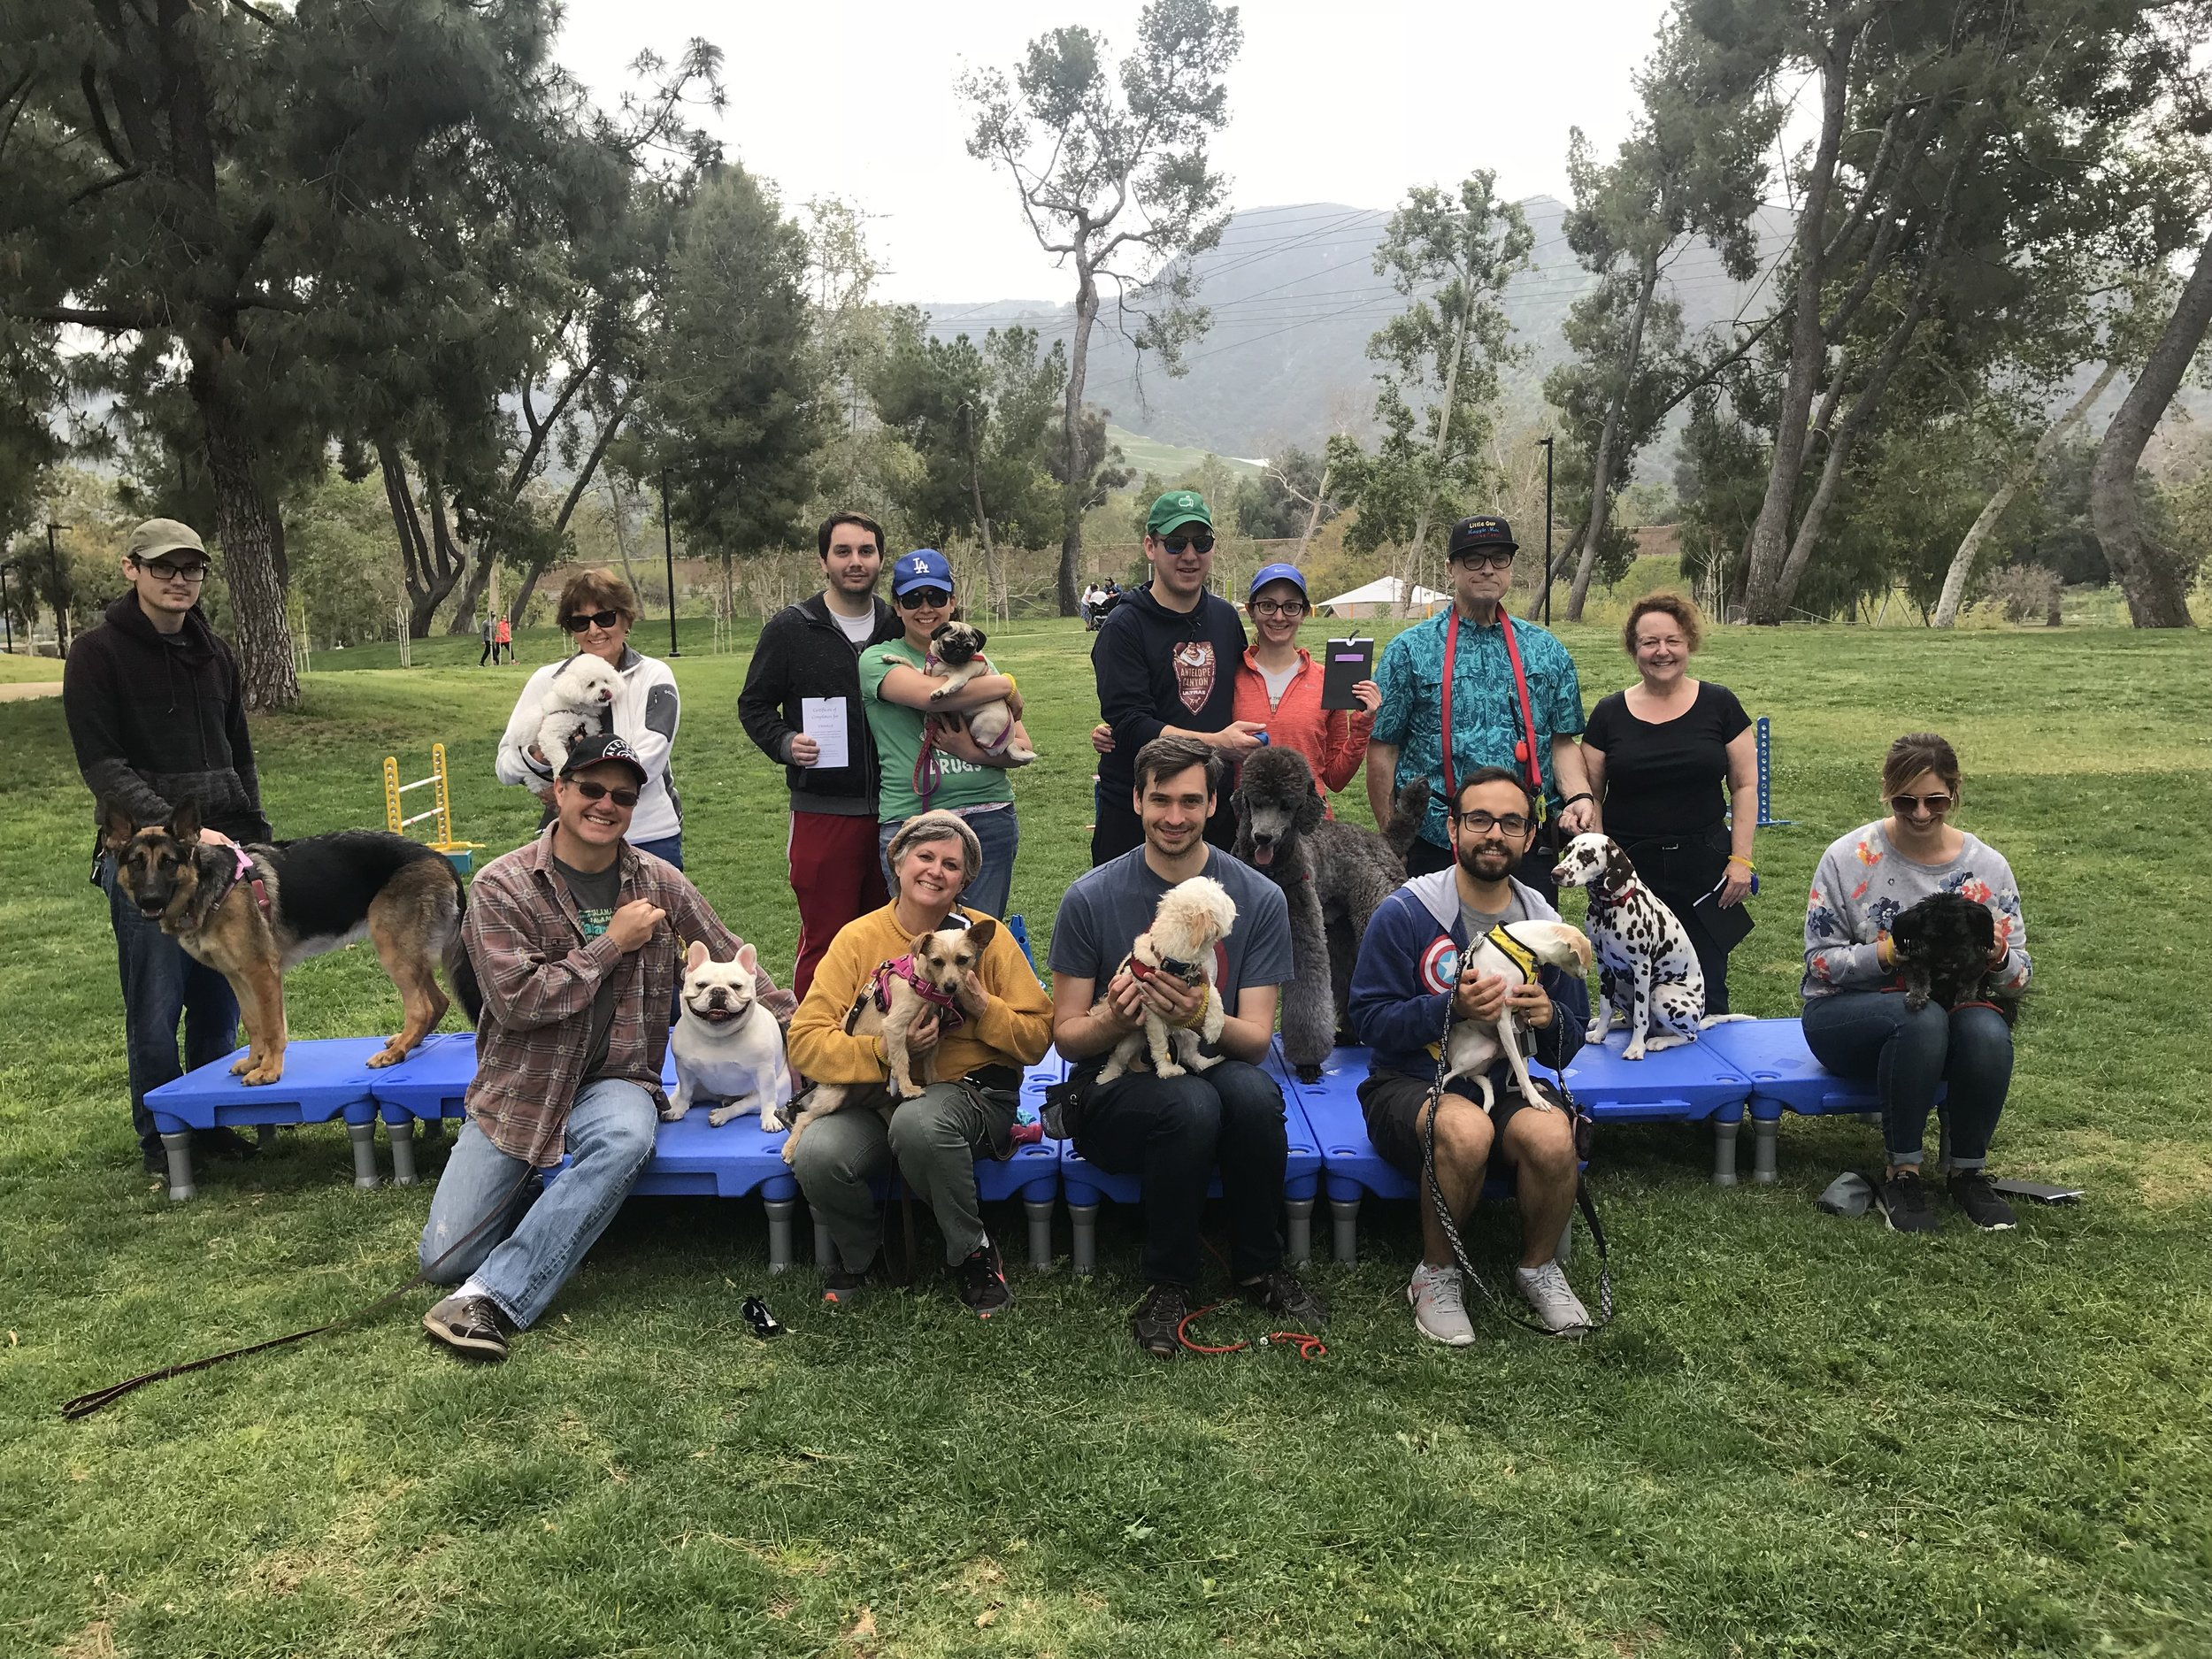 Highly sought after Obedience Classes include Obedience, on-leash socialization as well as minor agility. You receive a set of 7 lessons for the competitive price $175!